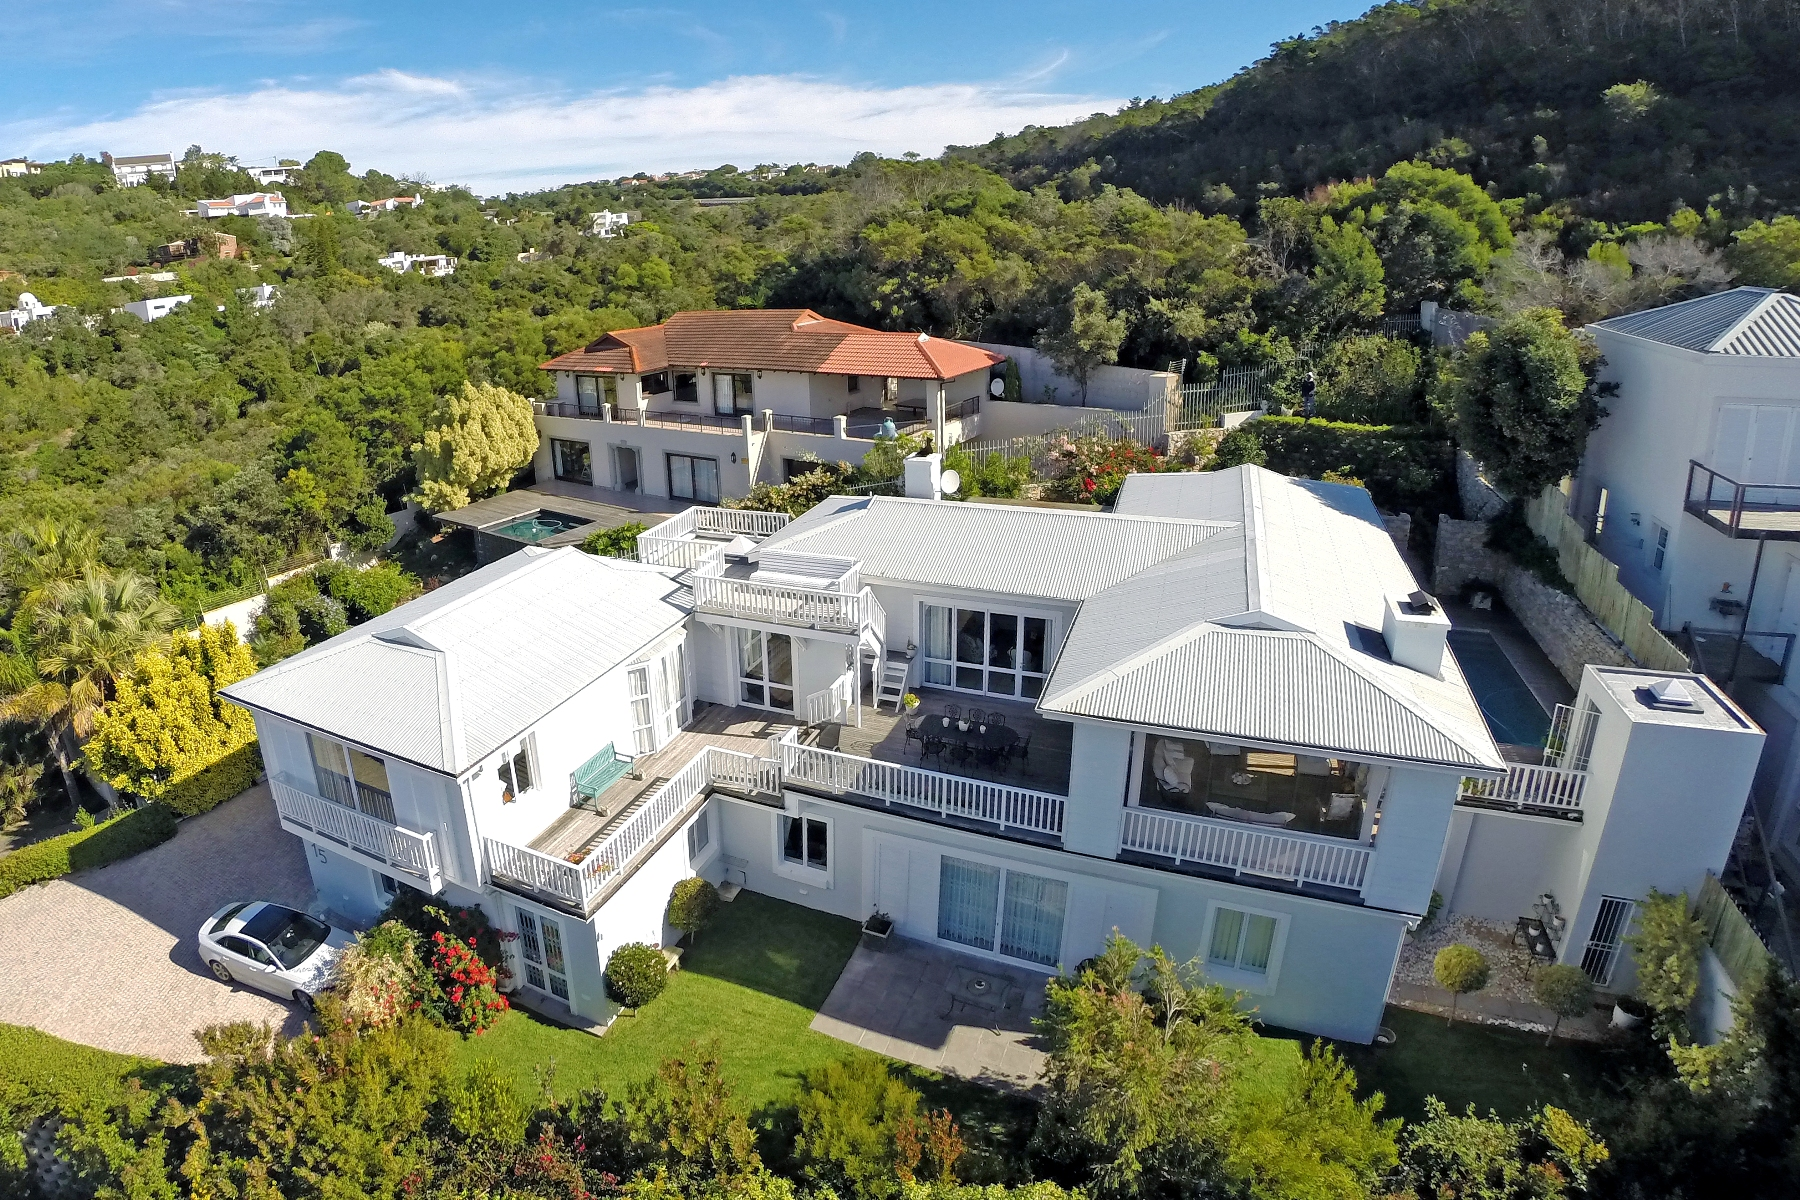 Single Family Home for Sale at Elegant home with a view Plettenberg Bay, Western Cape 6600 South Africa